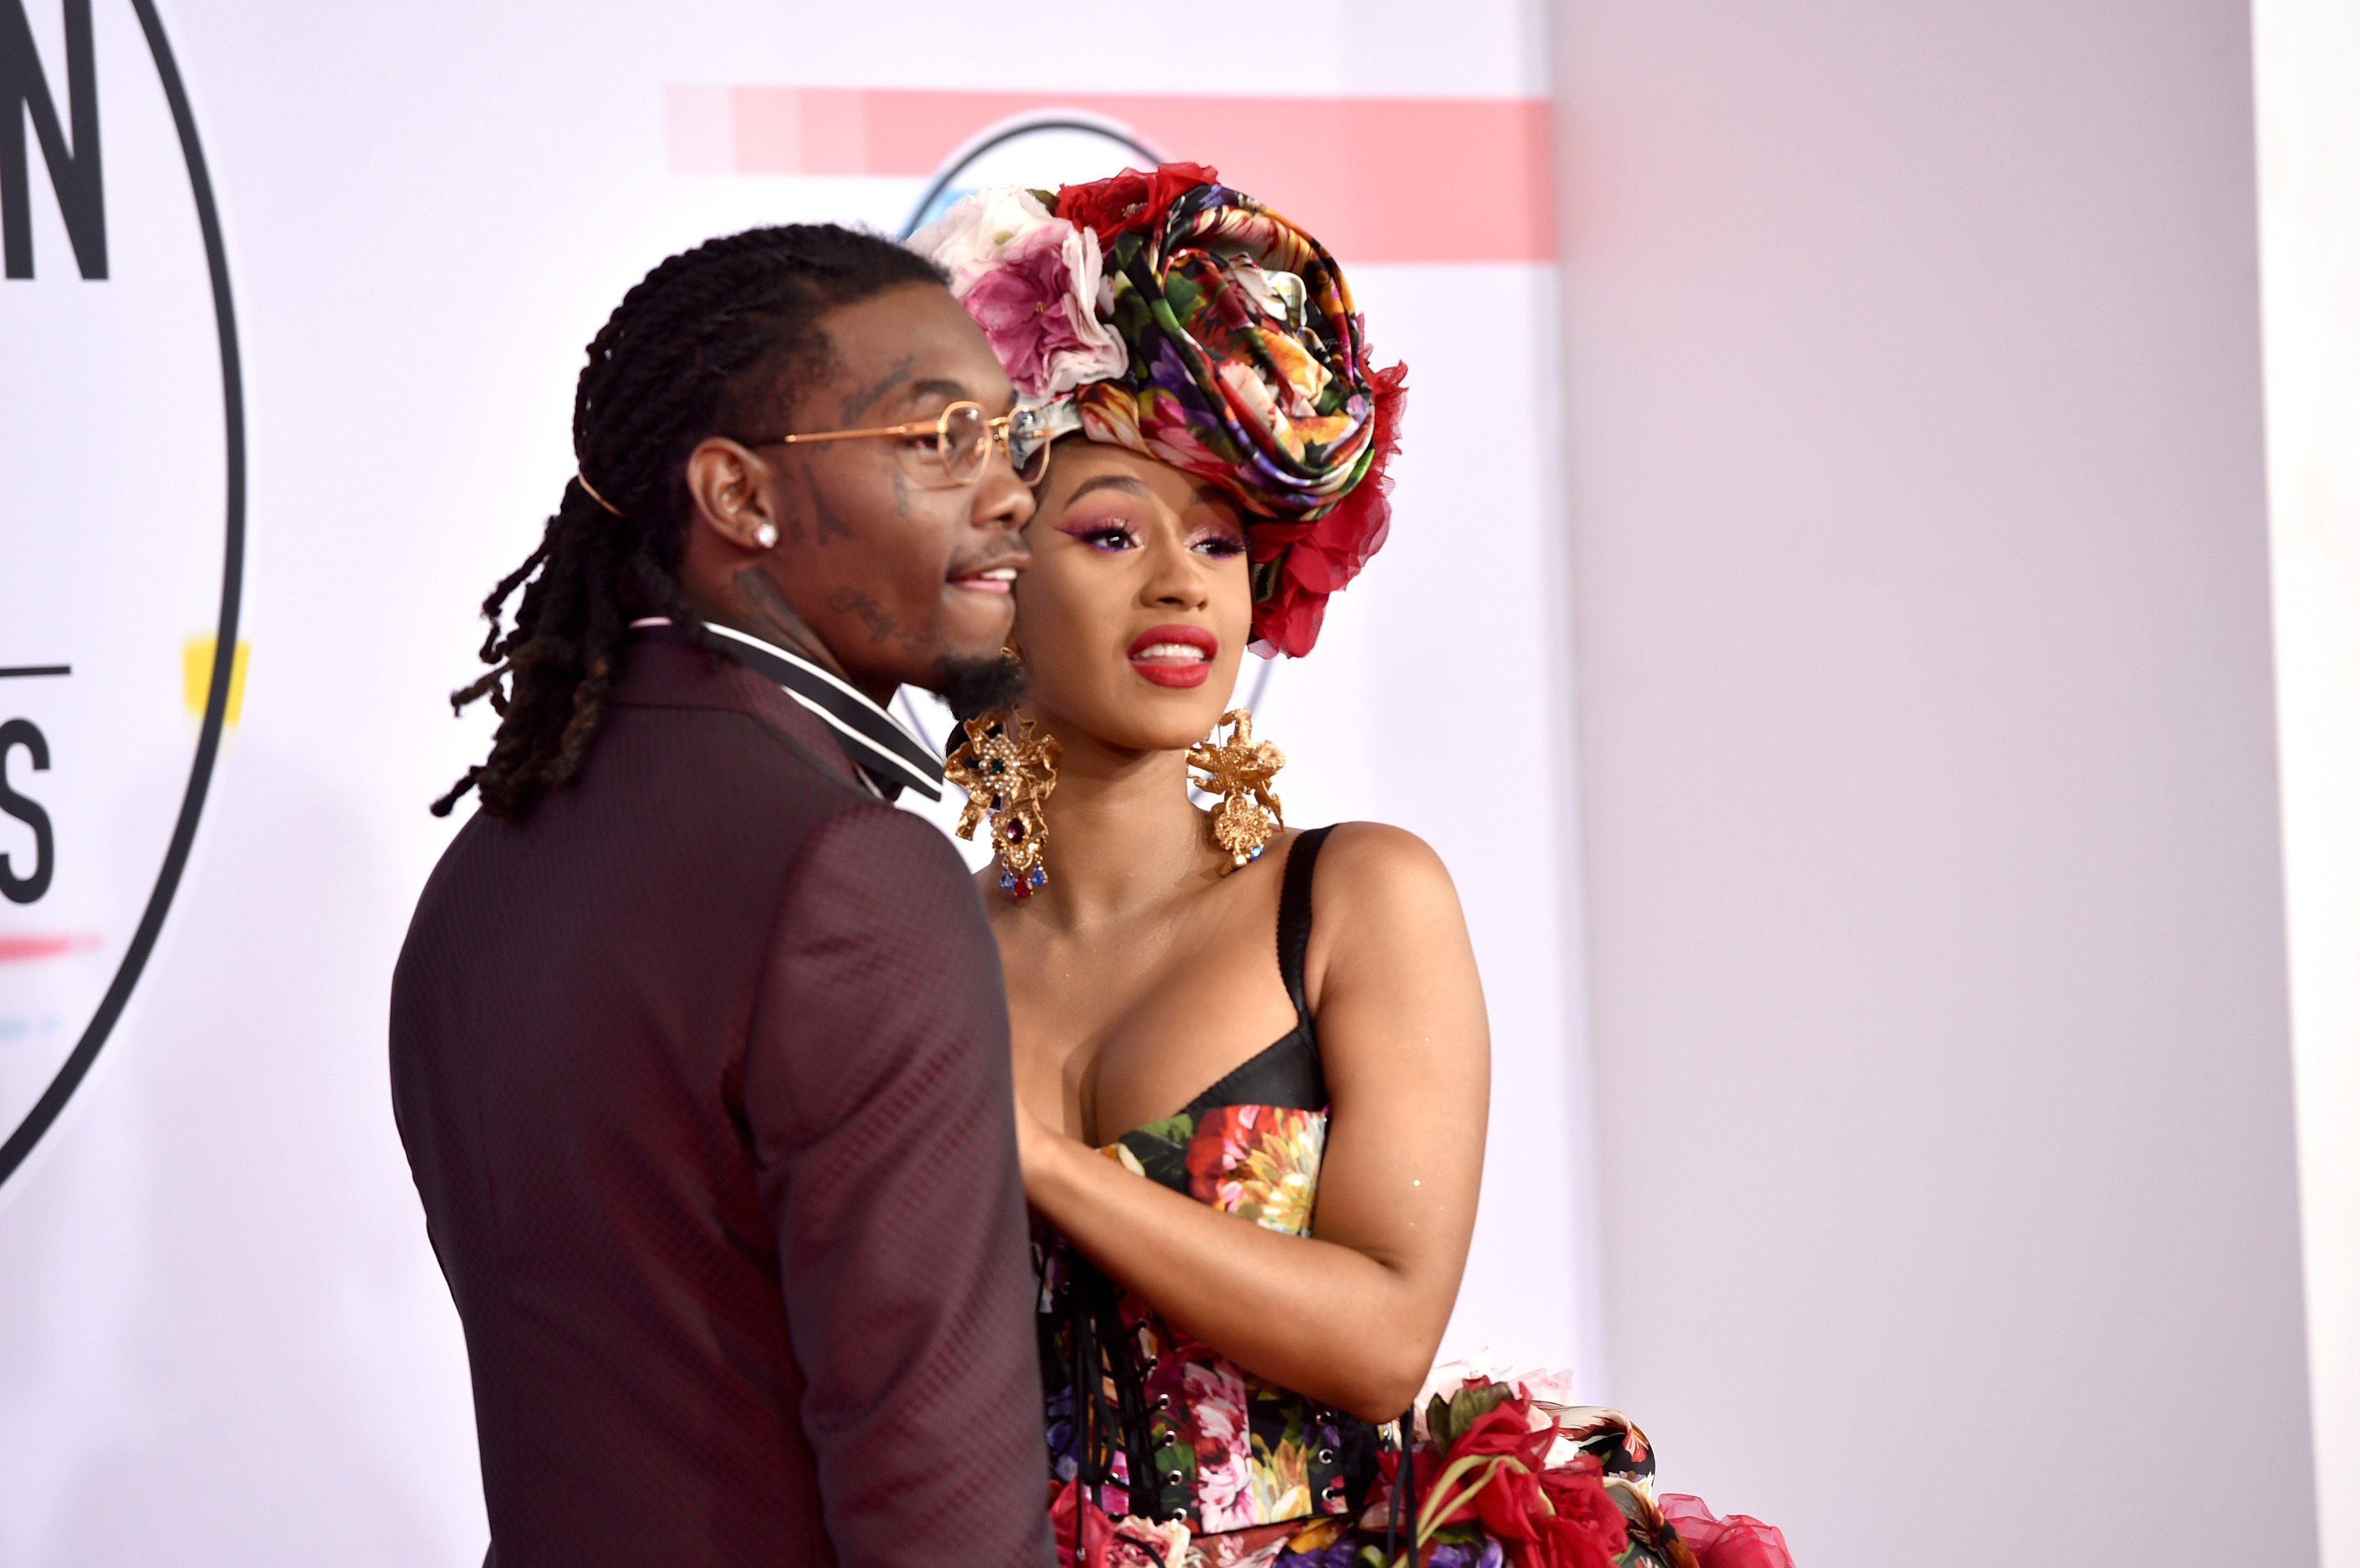 Offset and Cardi B at the 2018 American Music Awards on October 9, 2018 in Los Angeles, California.   Source: Getty Images